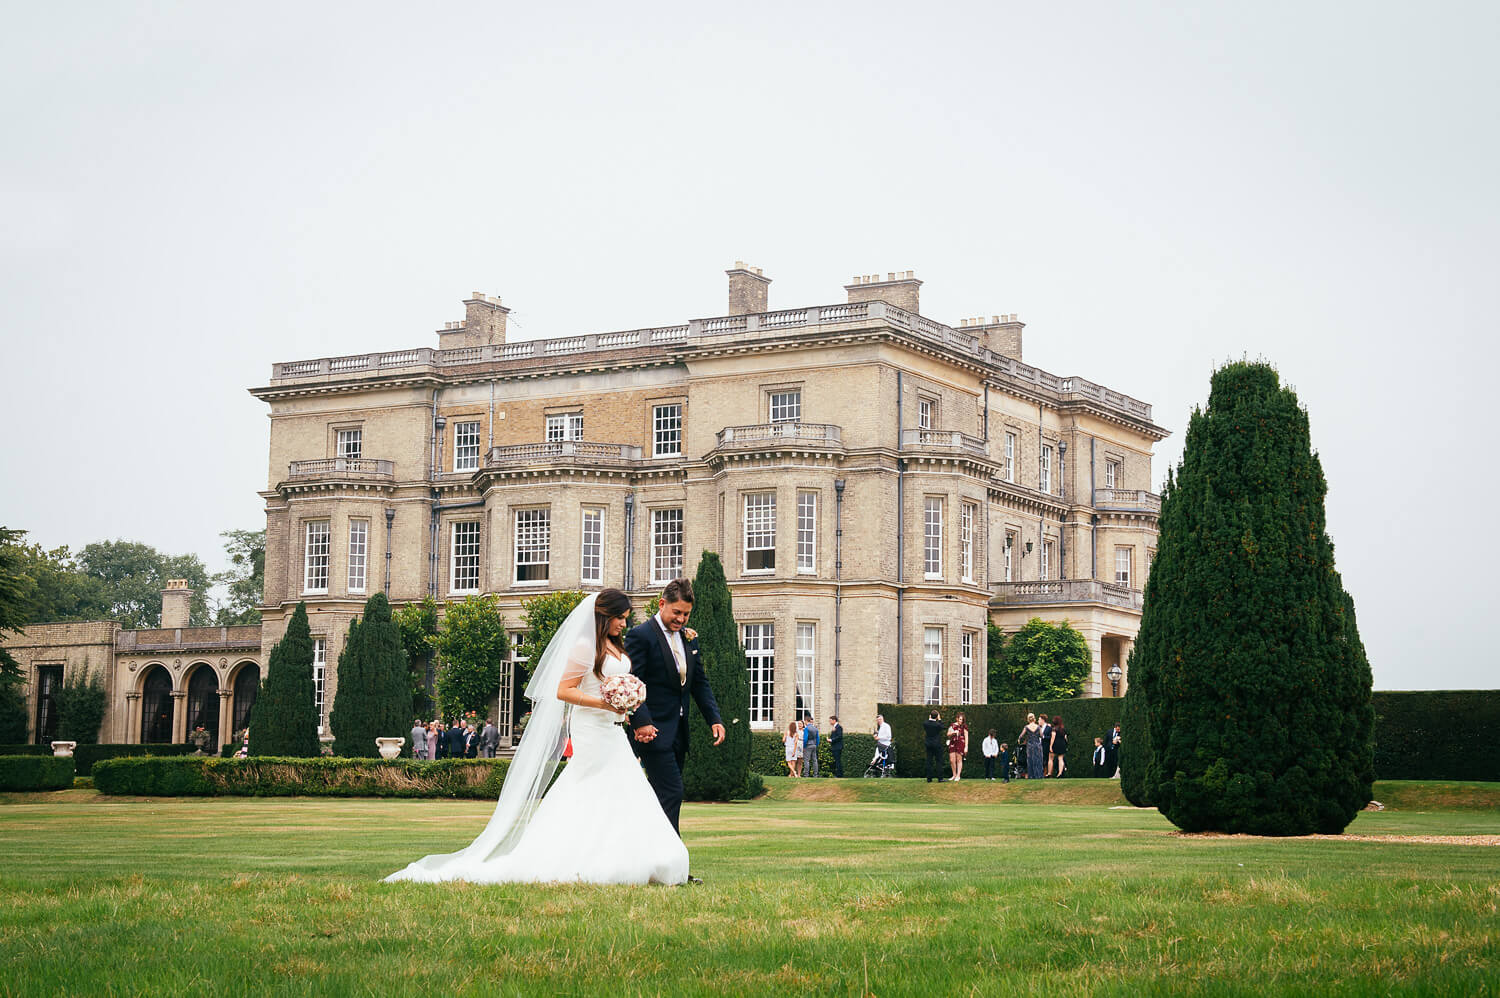 YOUR WEDDING AT HEDSOR